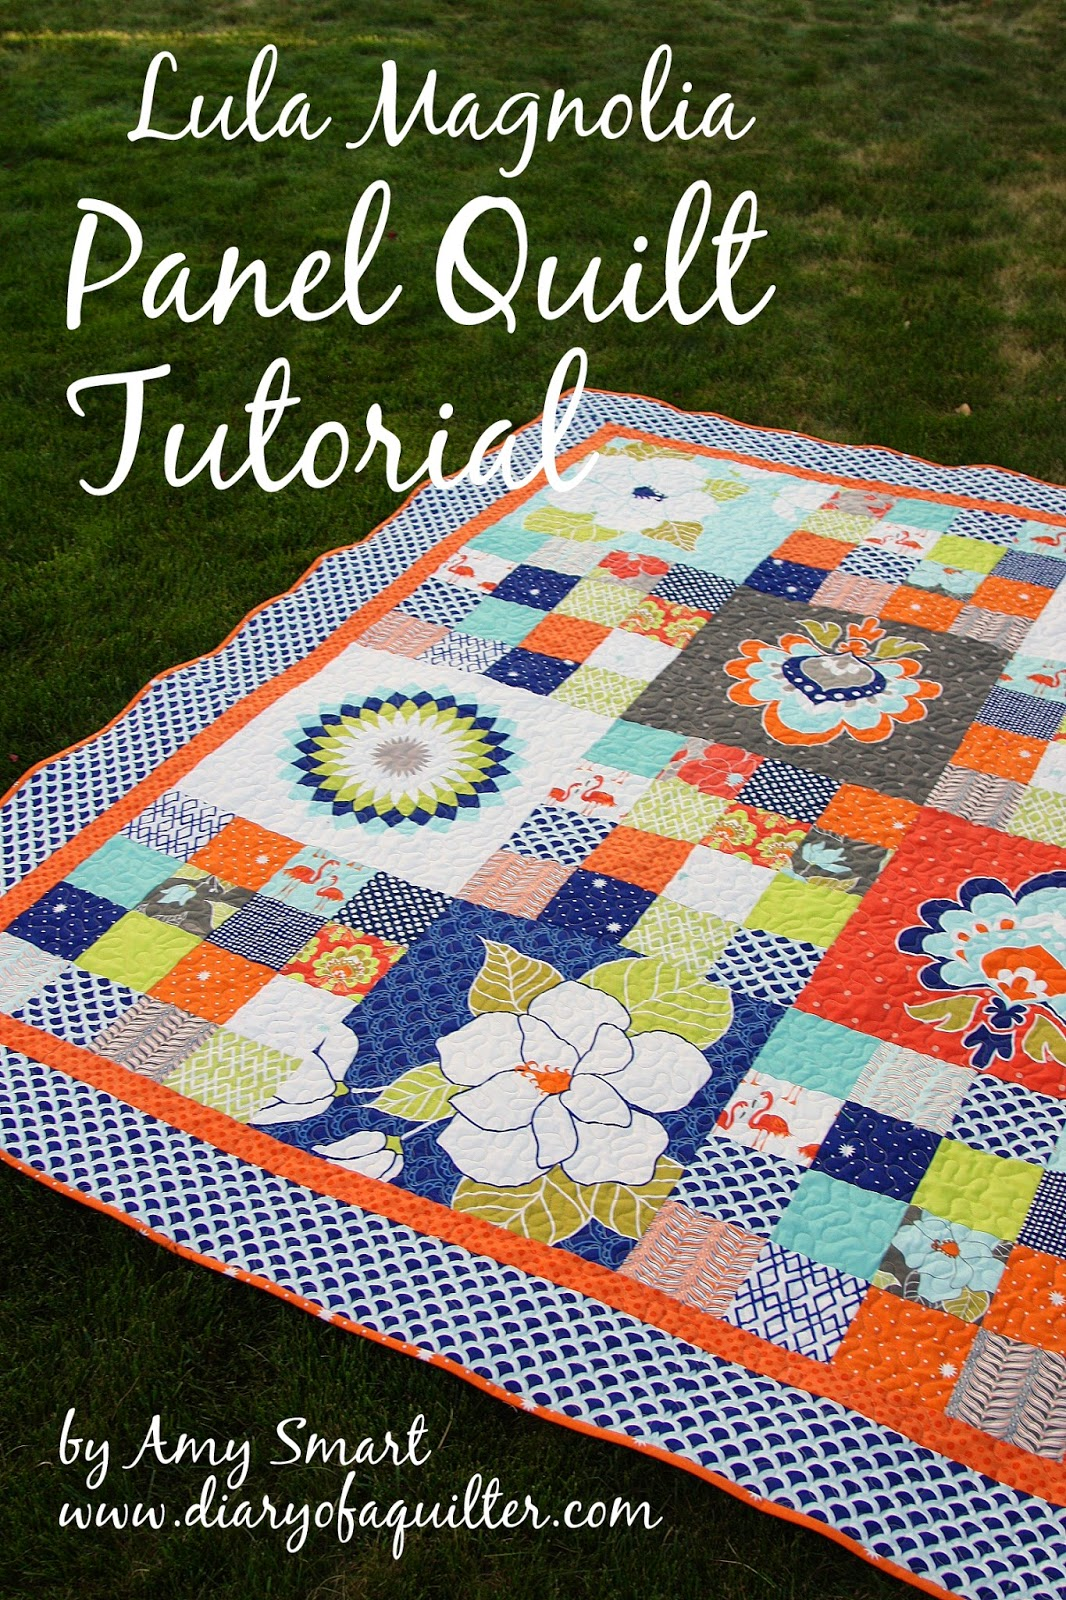 Quilting Panels Quilt Patterns : Project Design Team Wednesday ~ Lula Magnolia Panel Quilt Tutorial Riley Blake Designs